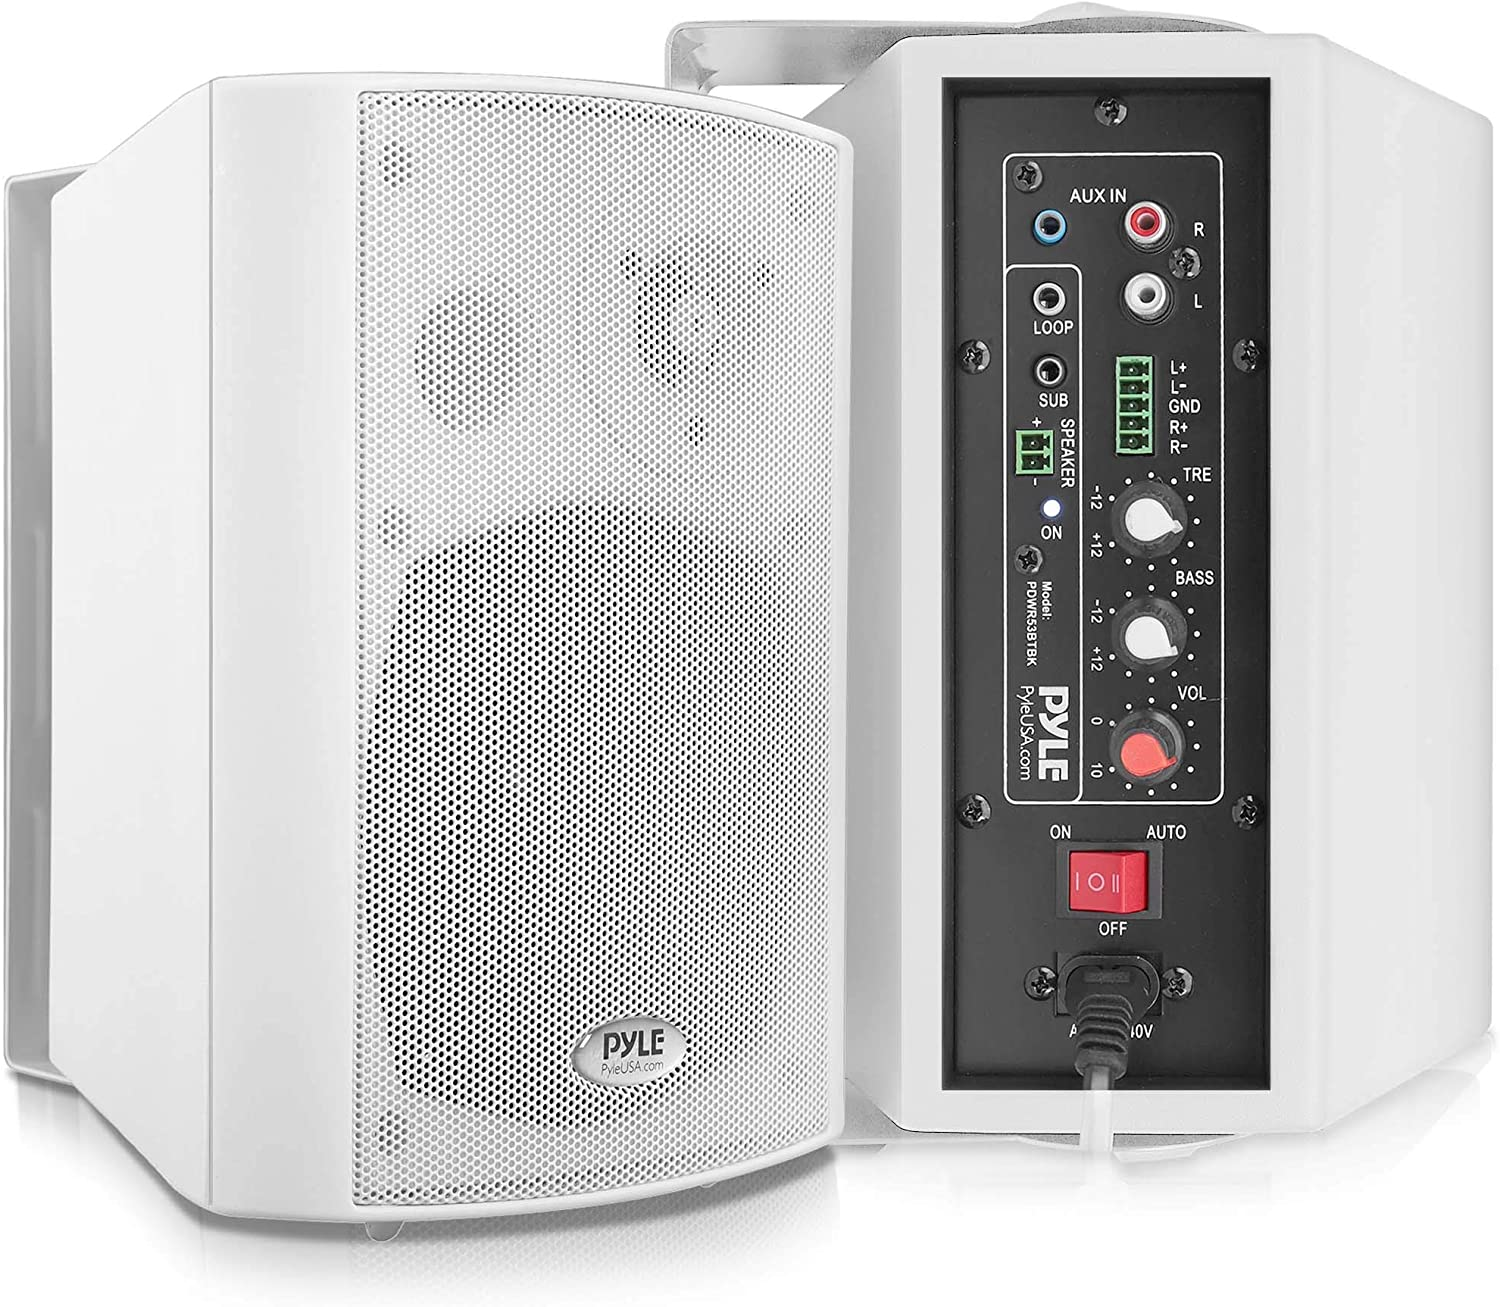 Wall Mount Home Speaker System - Active Passive Mountable Bookshelf Indoor Studio Garage Patio Stereo Sound Home Theater Speaker, Wireless Bluetooth Speaker Set W/Aux & RCA - Pyle PDWR53BTWT (White)